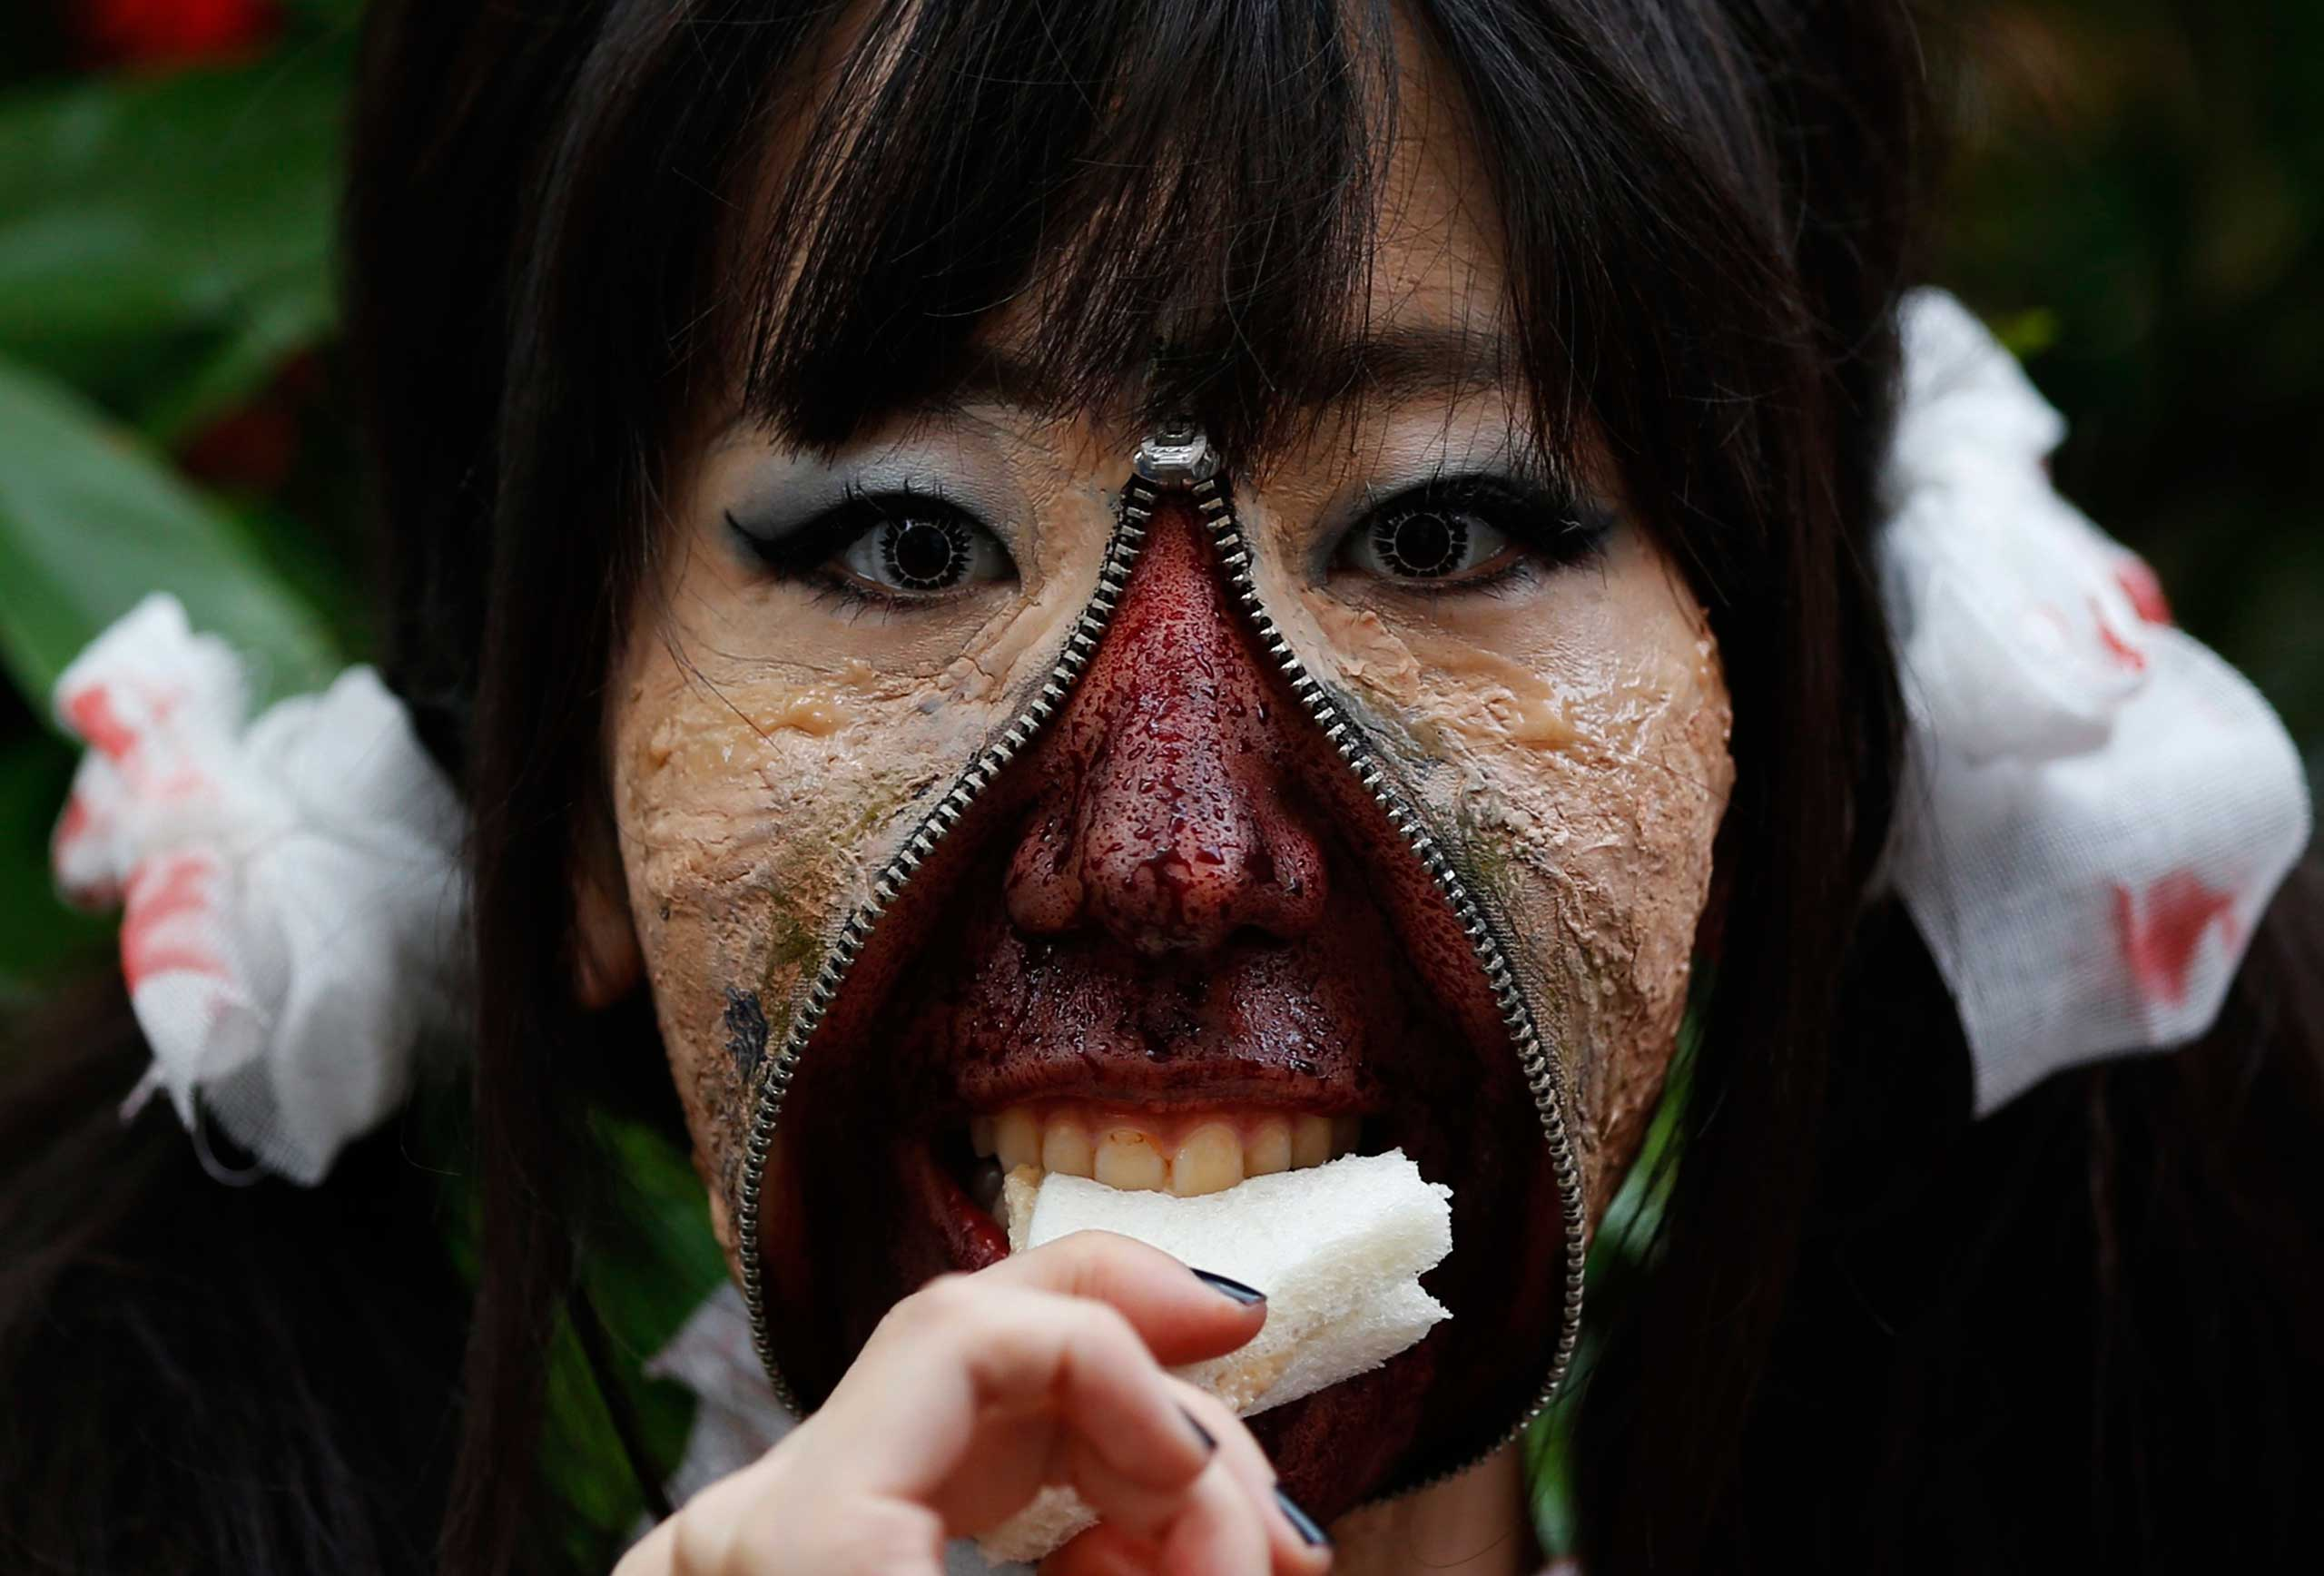 Oct. 26, 2014. A participant in costume eats a sandwich after a Halloween parade in Kawasaki, south of Tokyo. More than 100,000 spectators turned up to watch the parade, where 2,500 participants dressed up in costumes, according to the organizer.